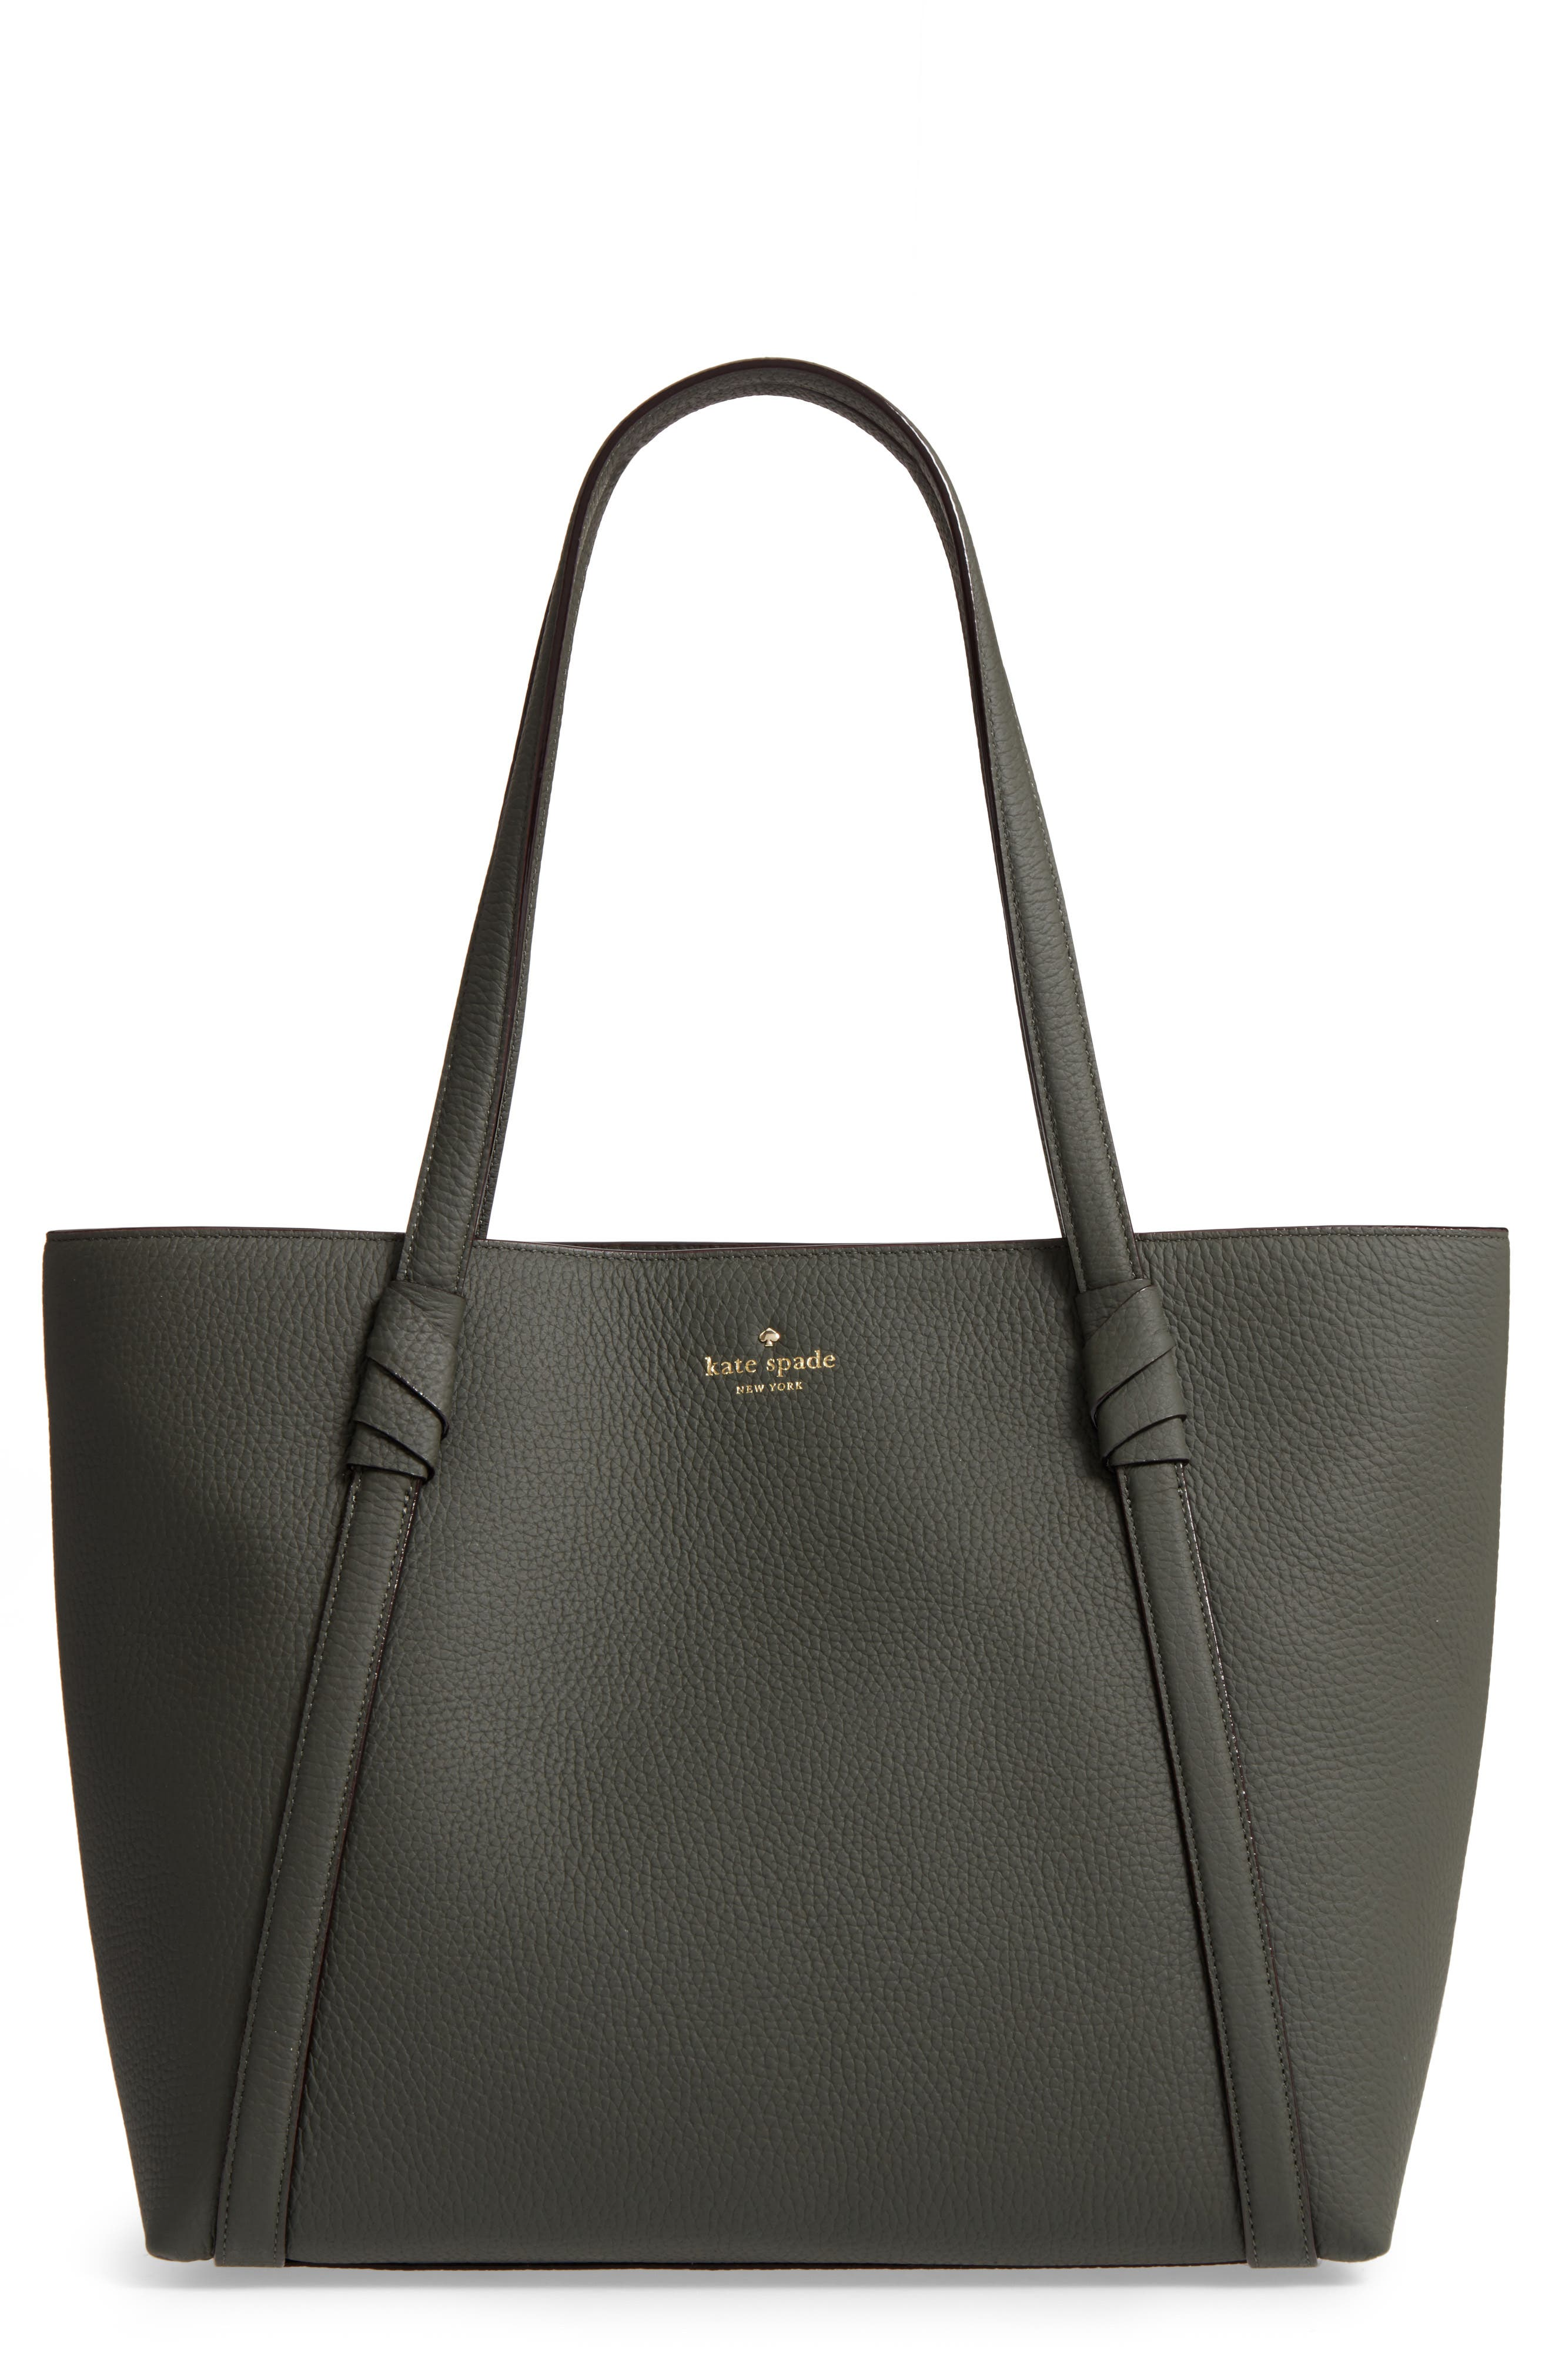 kate spade new york daniels drive - cherie leather tote (Nordstrom Exclusive)